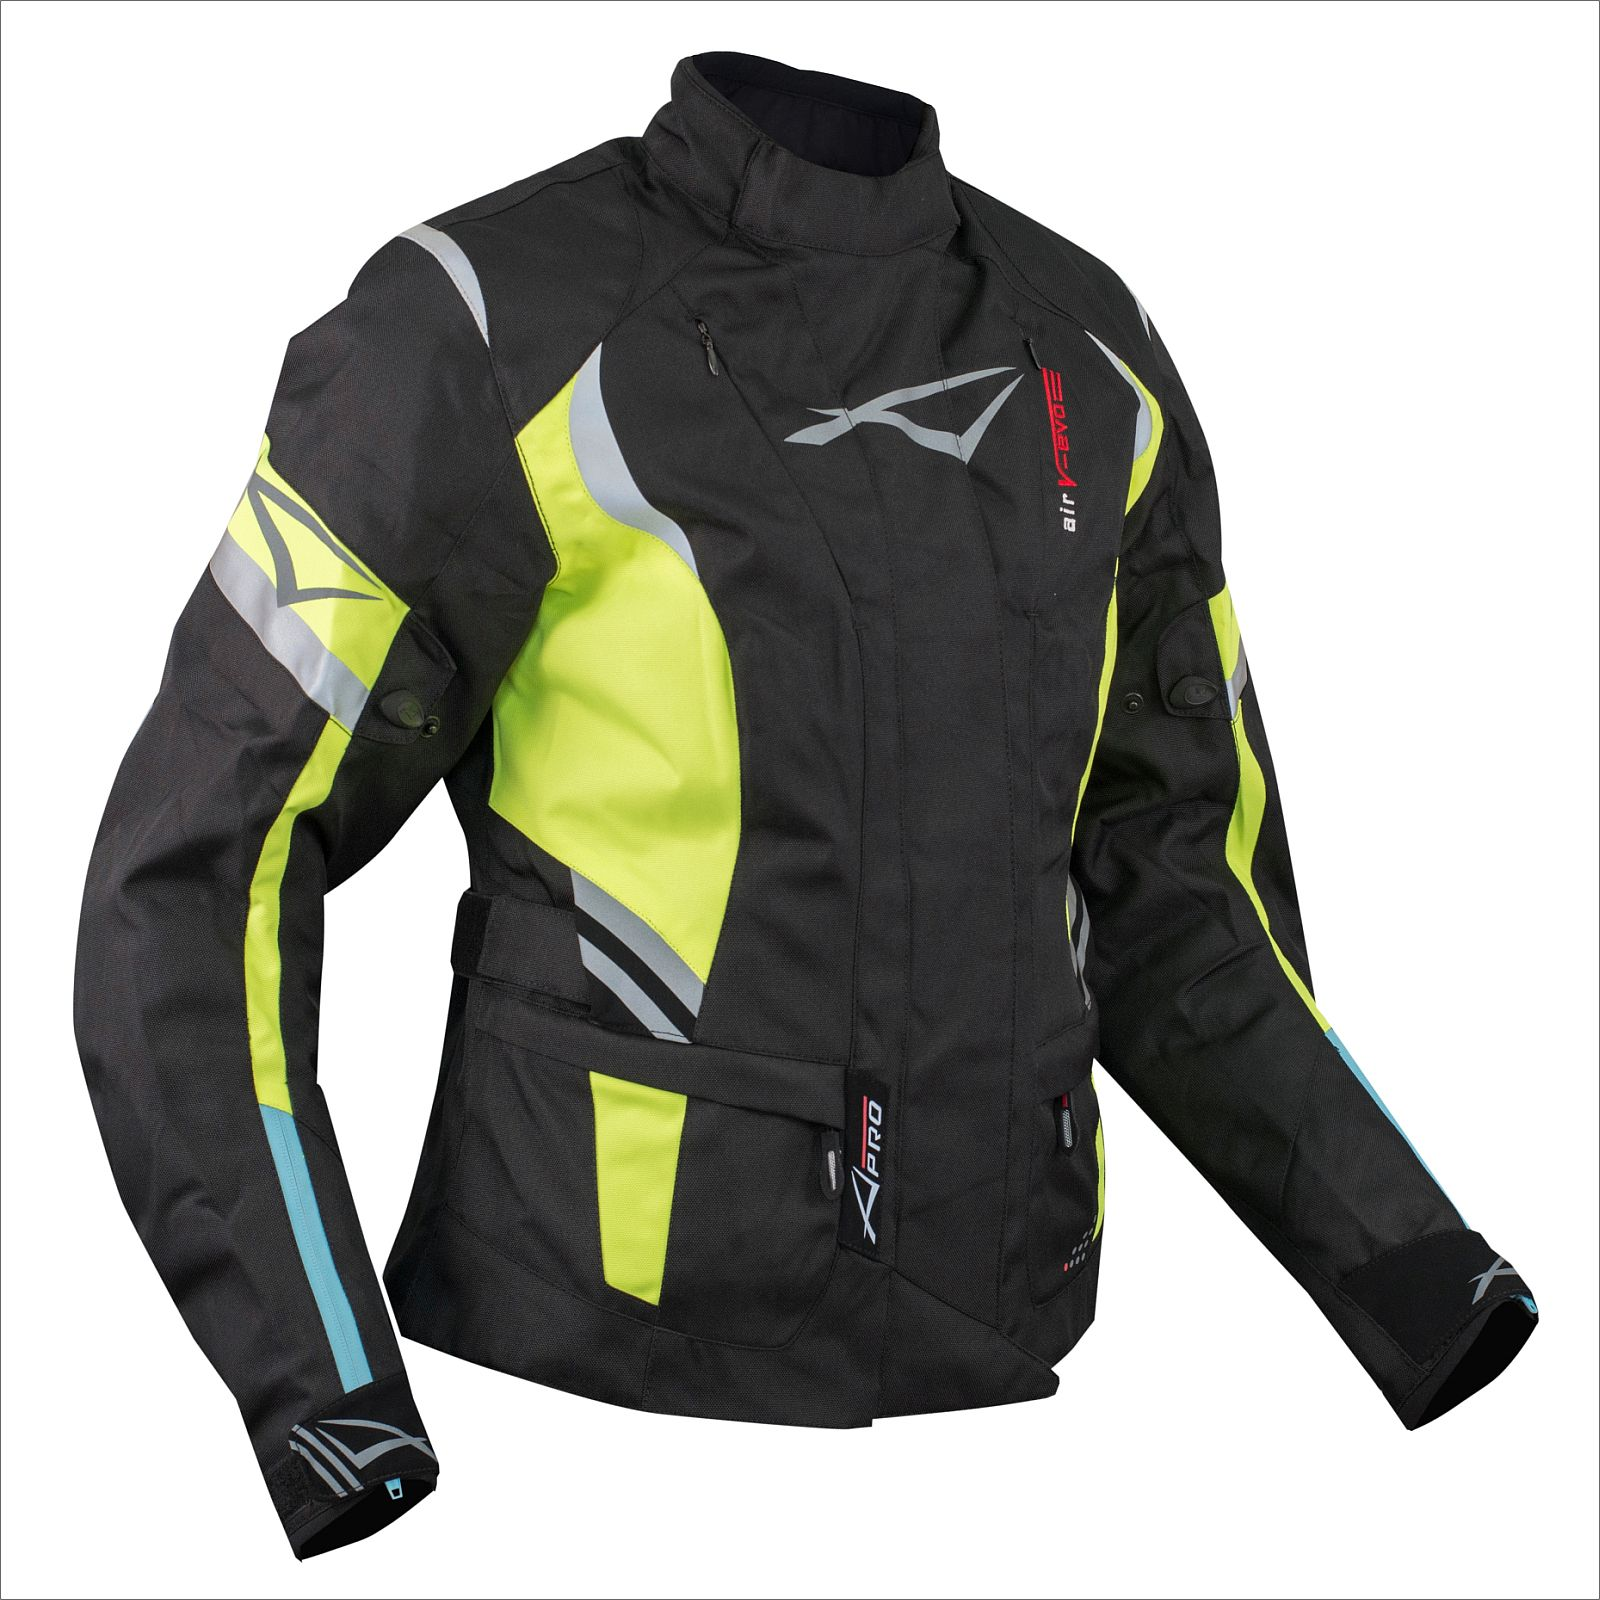 Jacket-Termicos-Extraibles-Protectores-Impermeable-Chaqueta-Moto-Mujeres-Fluo